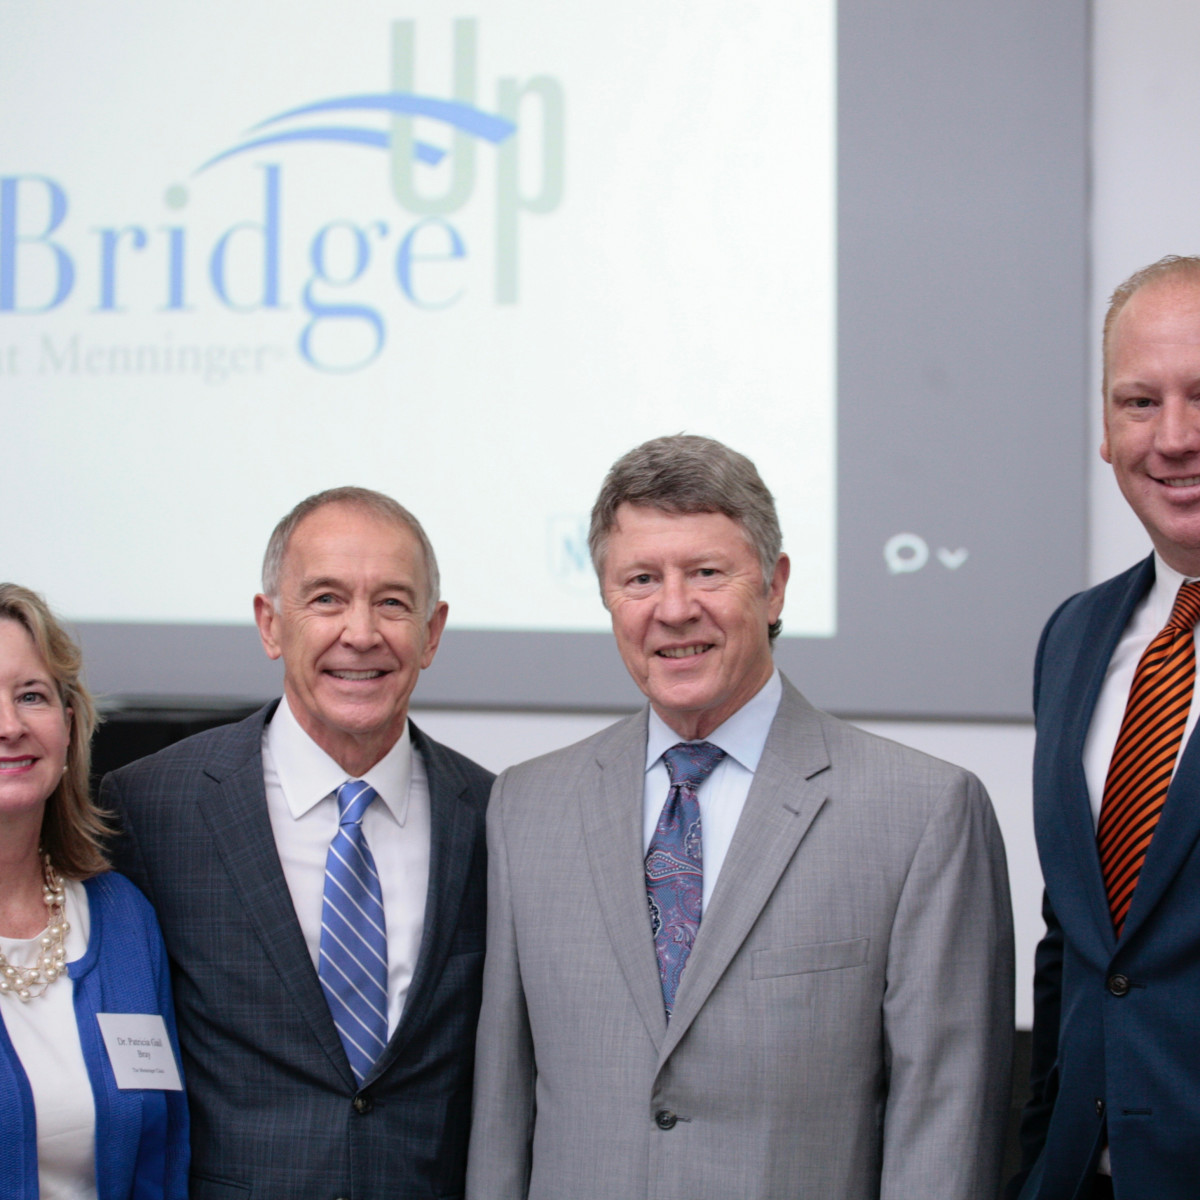 Menninger Bridge Up, Patricia Gail Bray, C. Edward Coffey, Ed Emmett, Bill Kelly